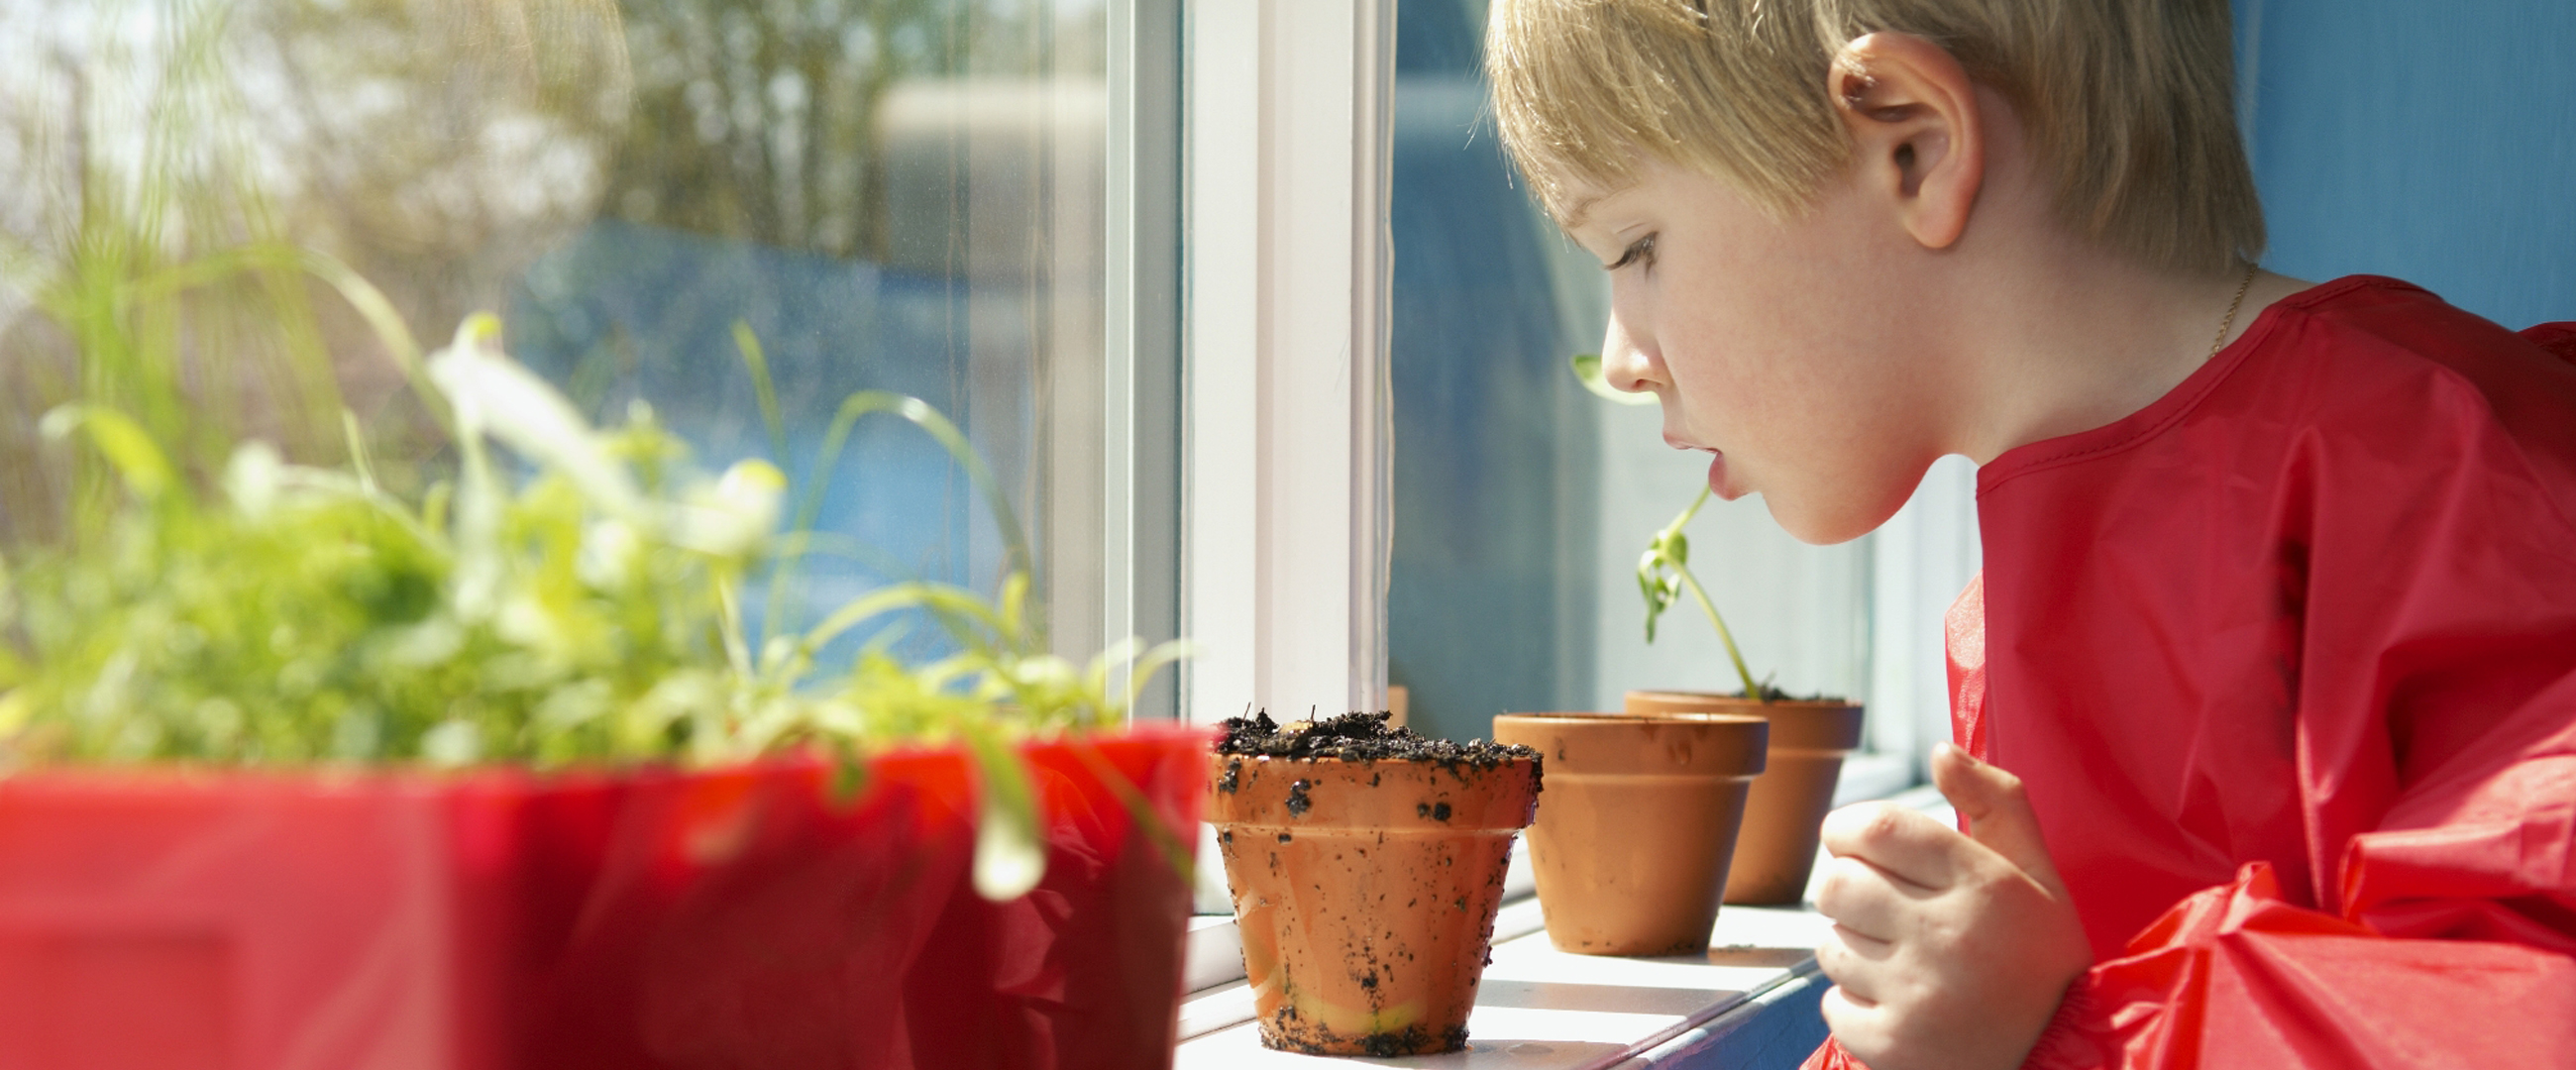 young boy in classroom looking at plants